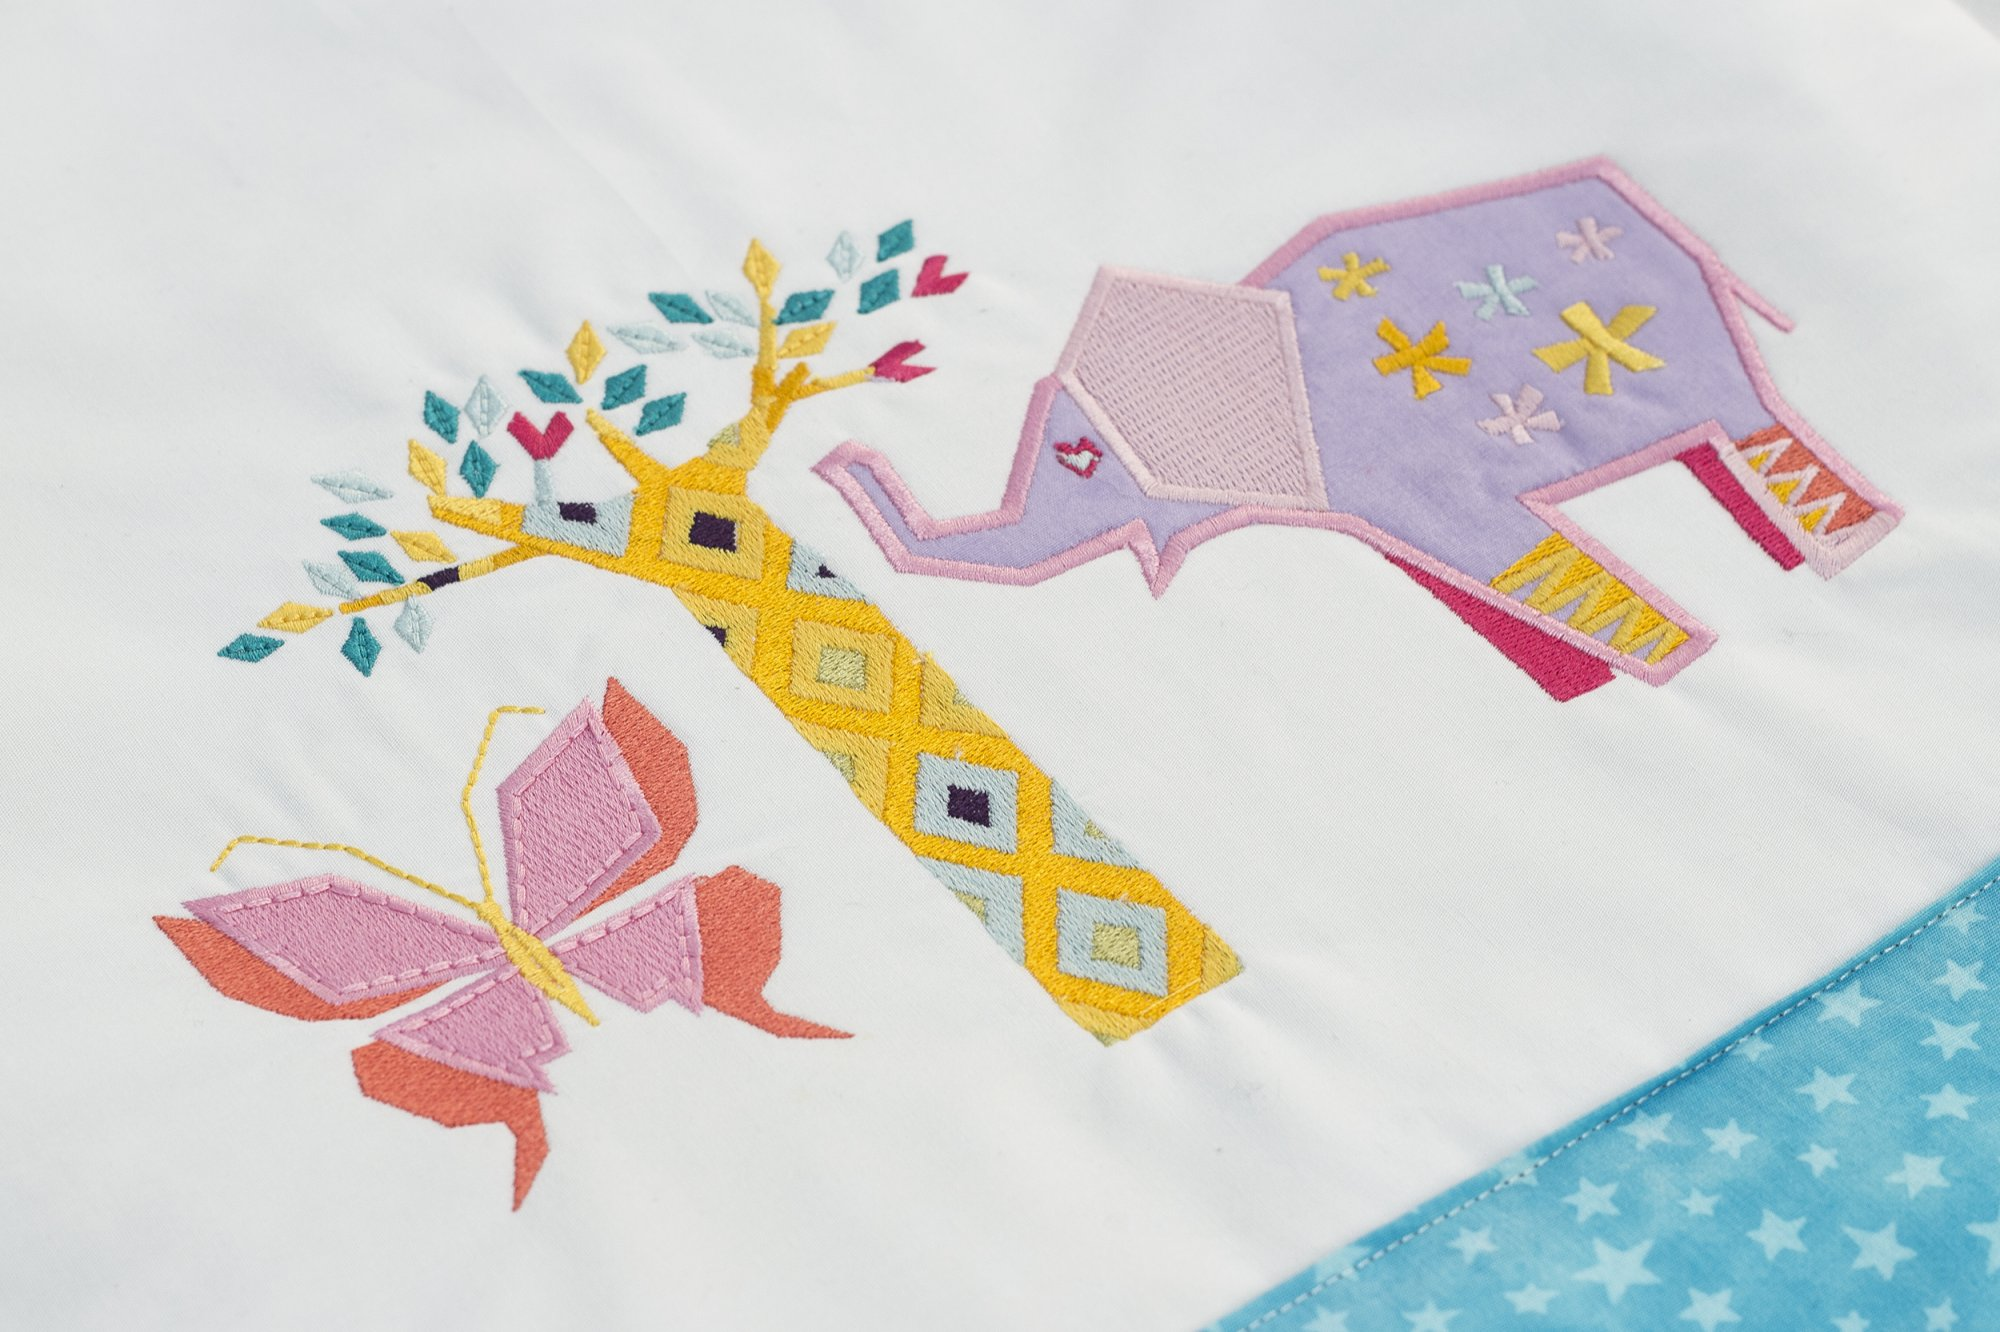 Origami Oasis Bernina Exclusive Embroidery Designs USB